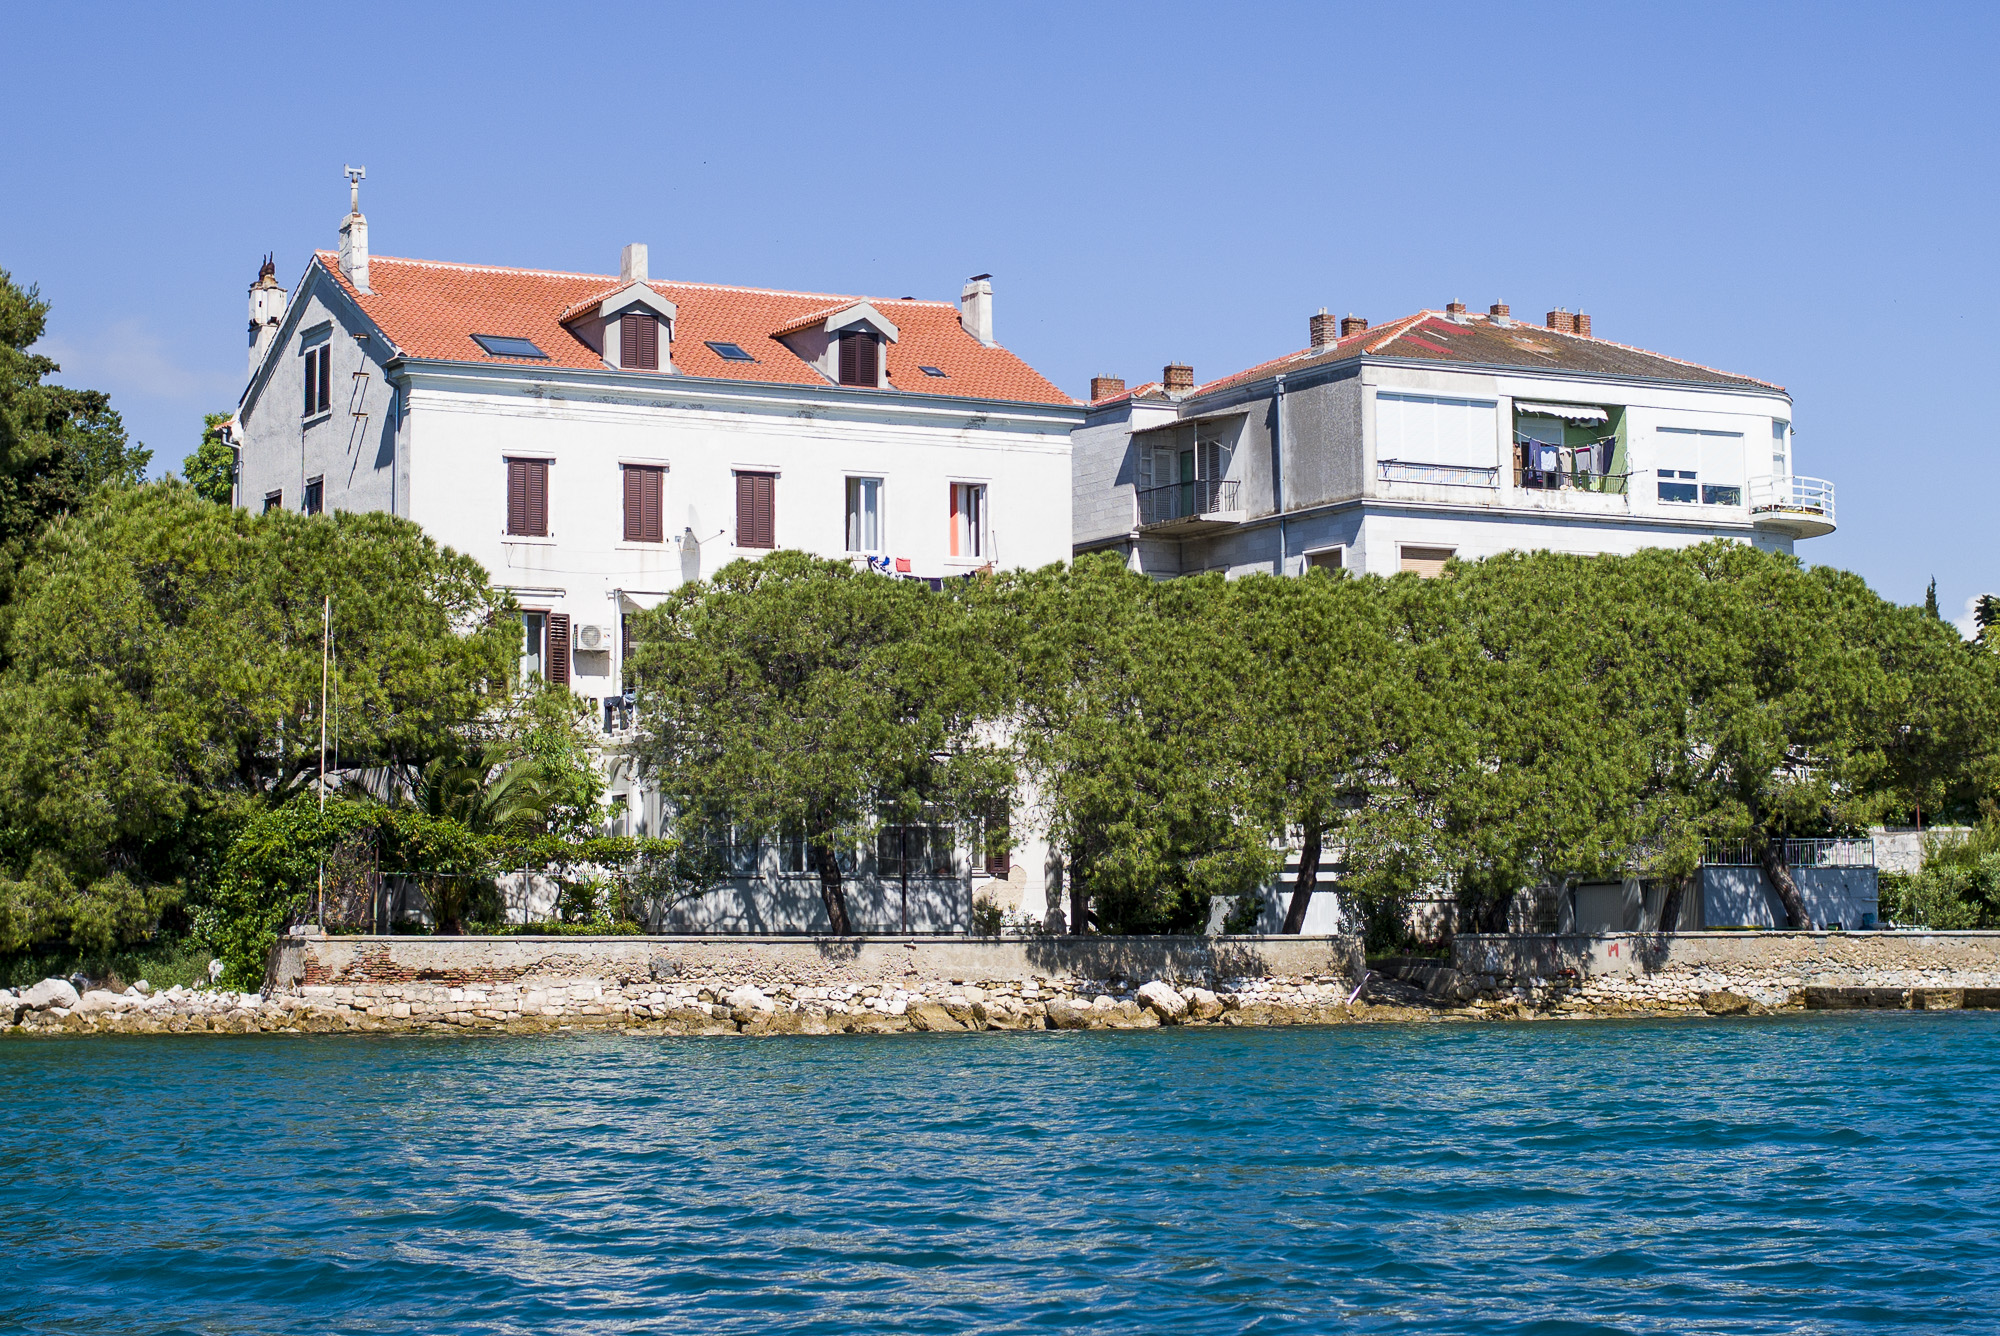 Our Airbnb apartment in Zadar